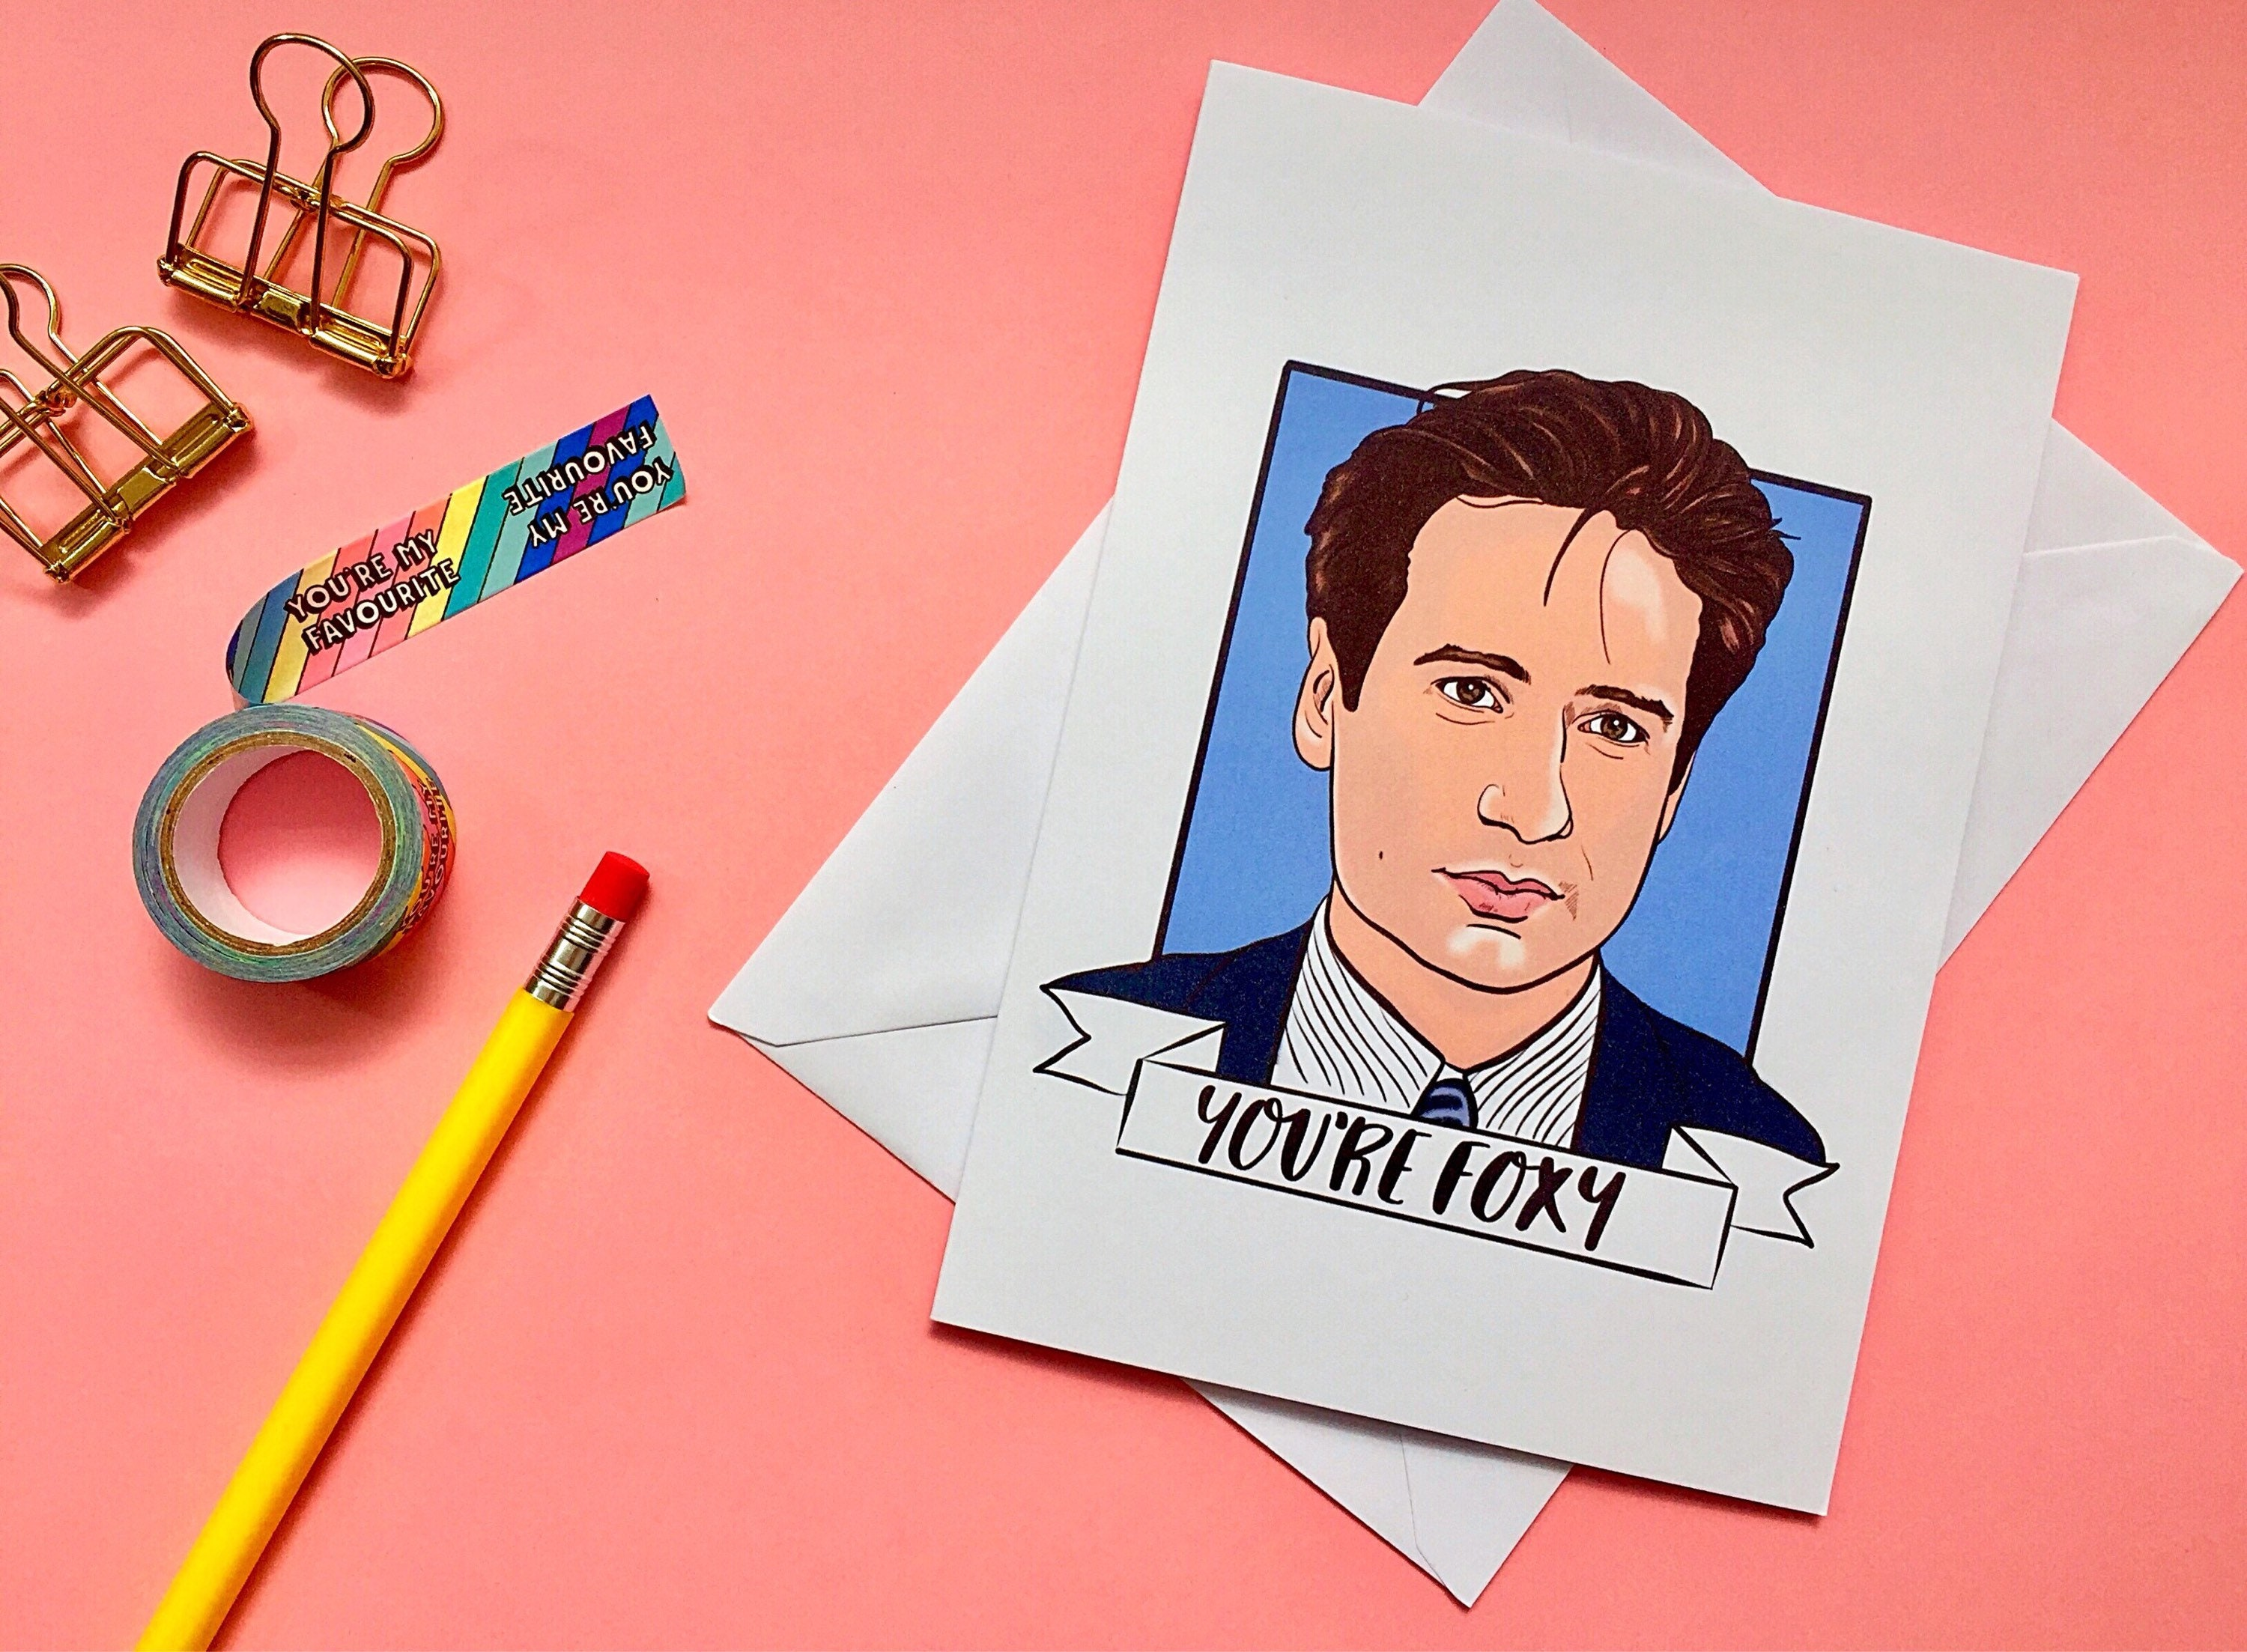 X-Files Scully Mulder A4 stickers set decals